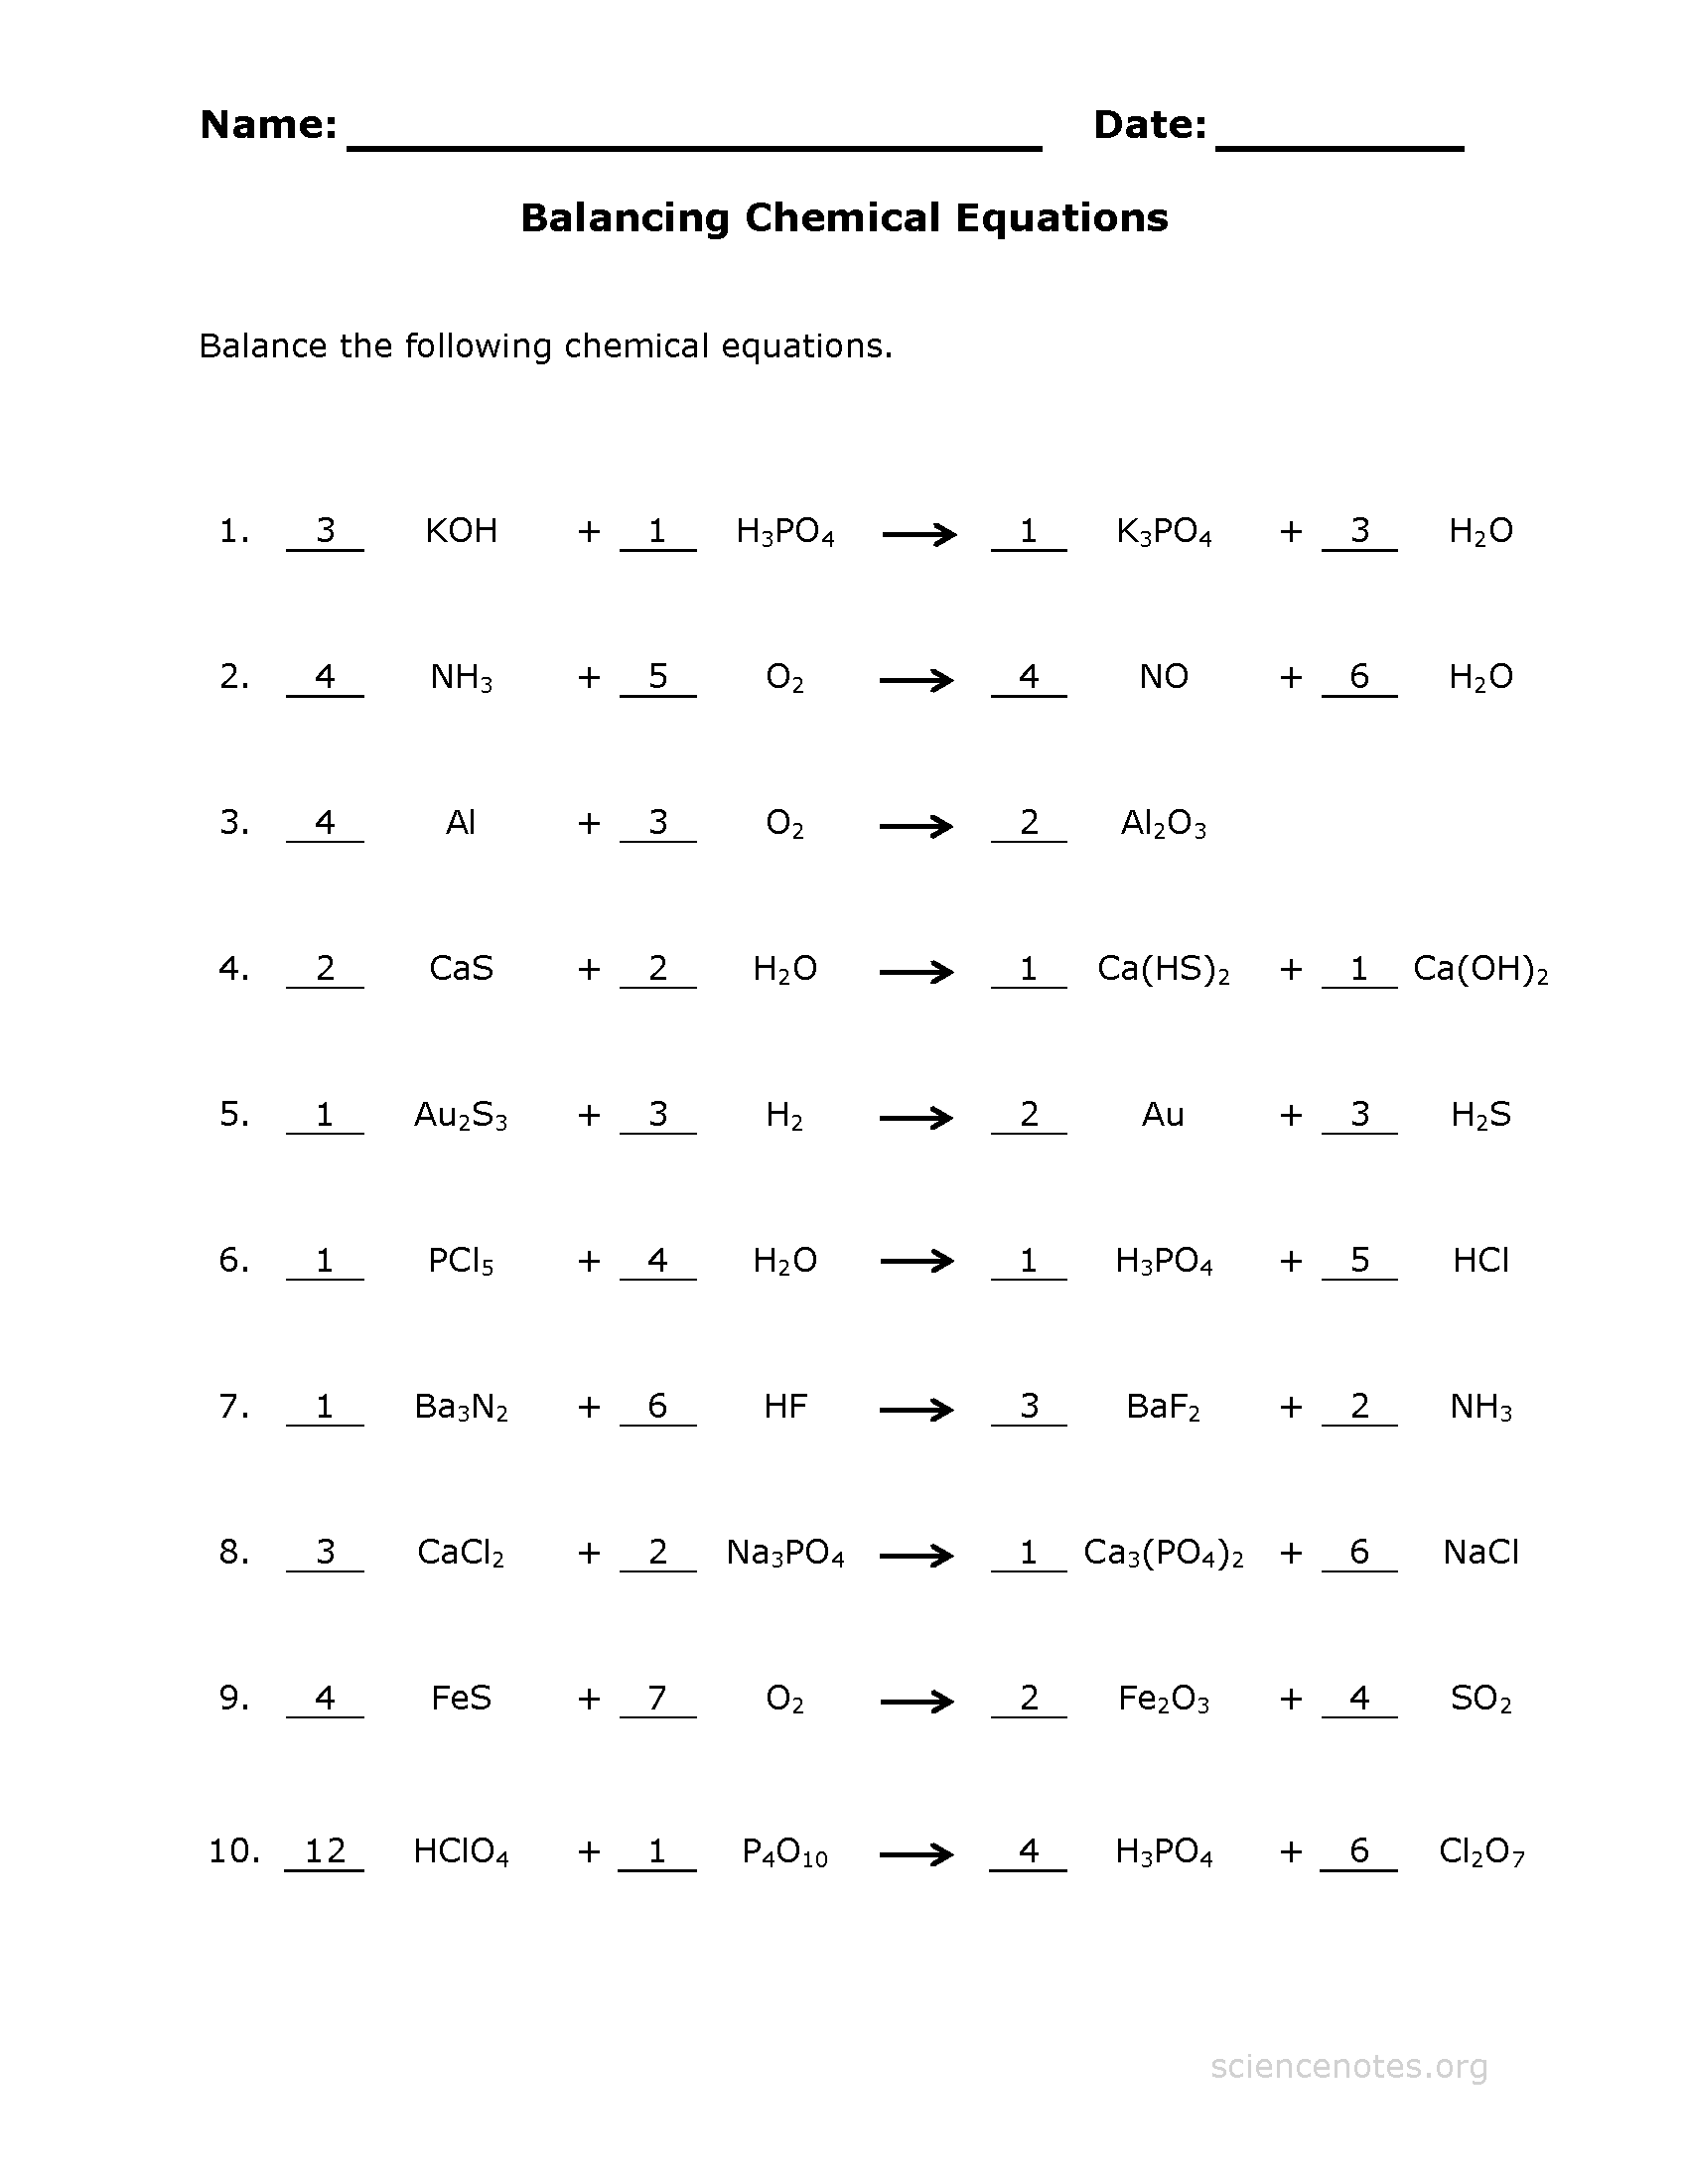 Printables Balancing Equations Worksheet 1 chemfiesta balancing equations worksheet answers abitlikethis chemical answer key 1275 1650